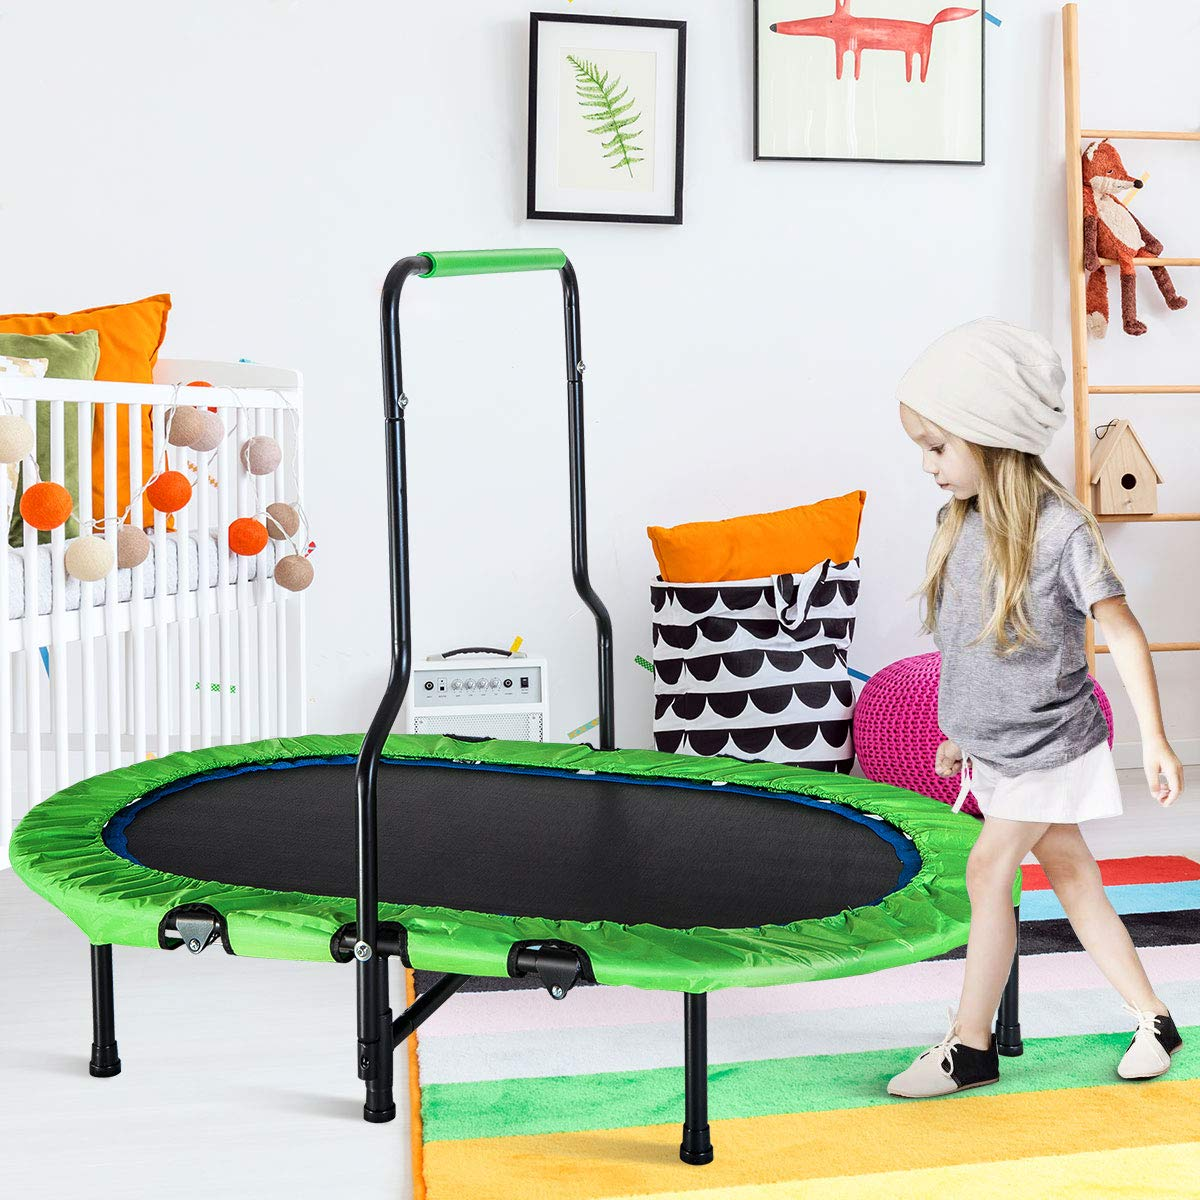 Merax Mini Rebounder Trampoline with Handle for Two Kids, Parent-Child Trampoline (Green) by Merax (Image #2)